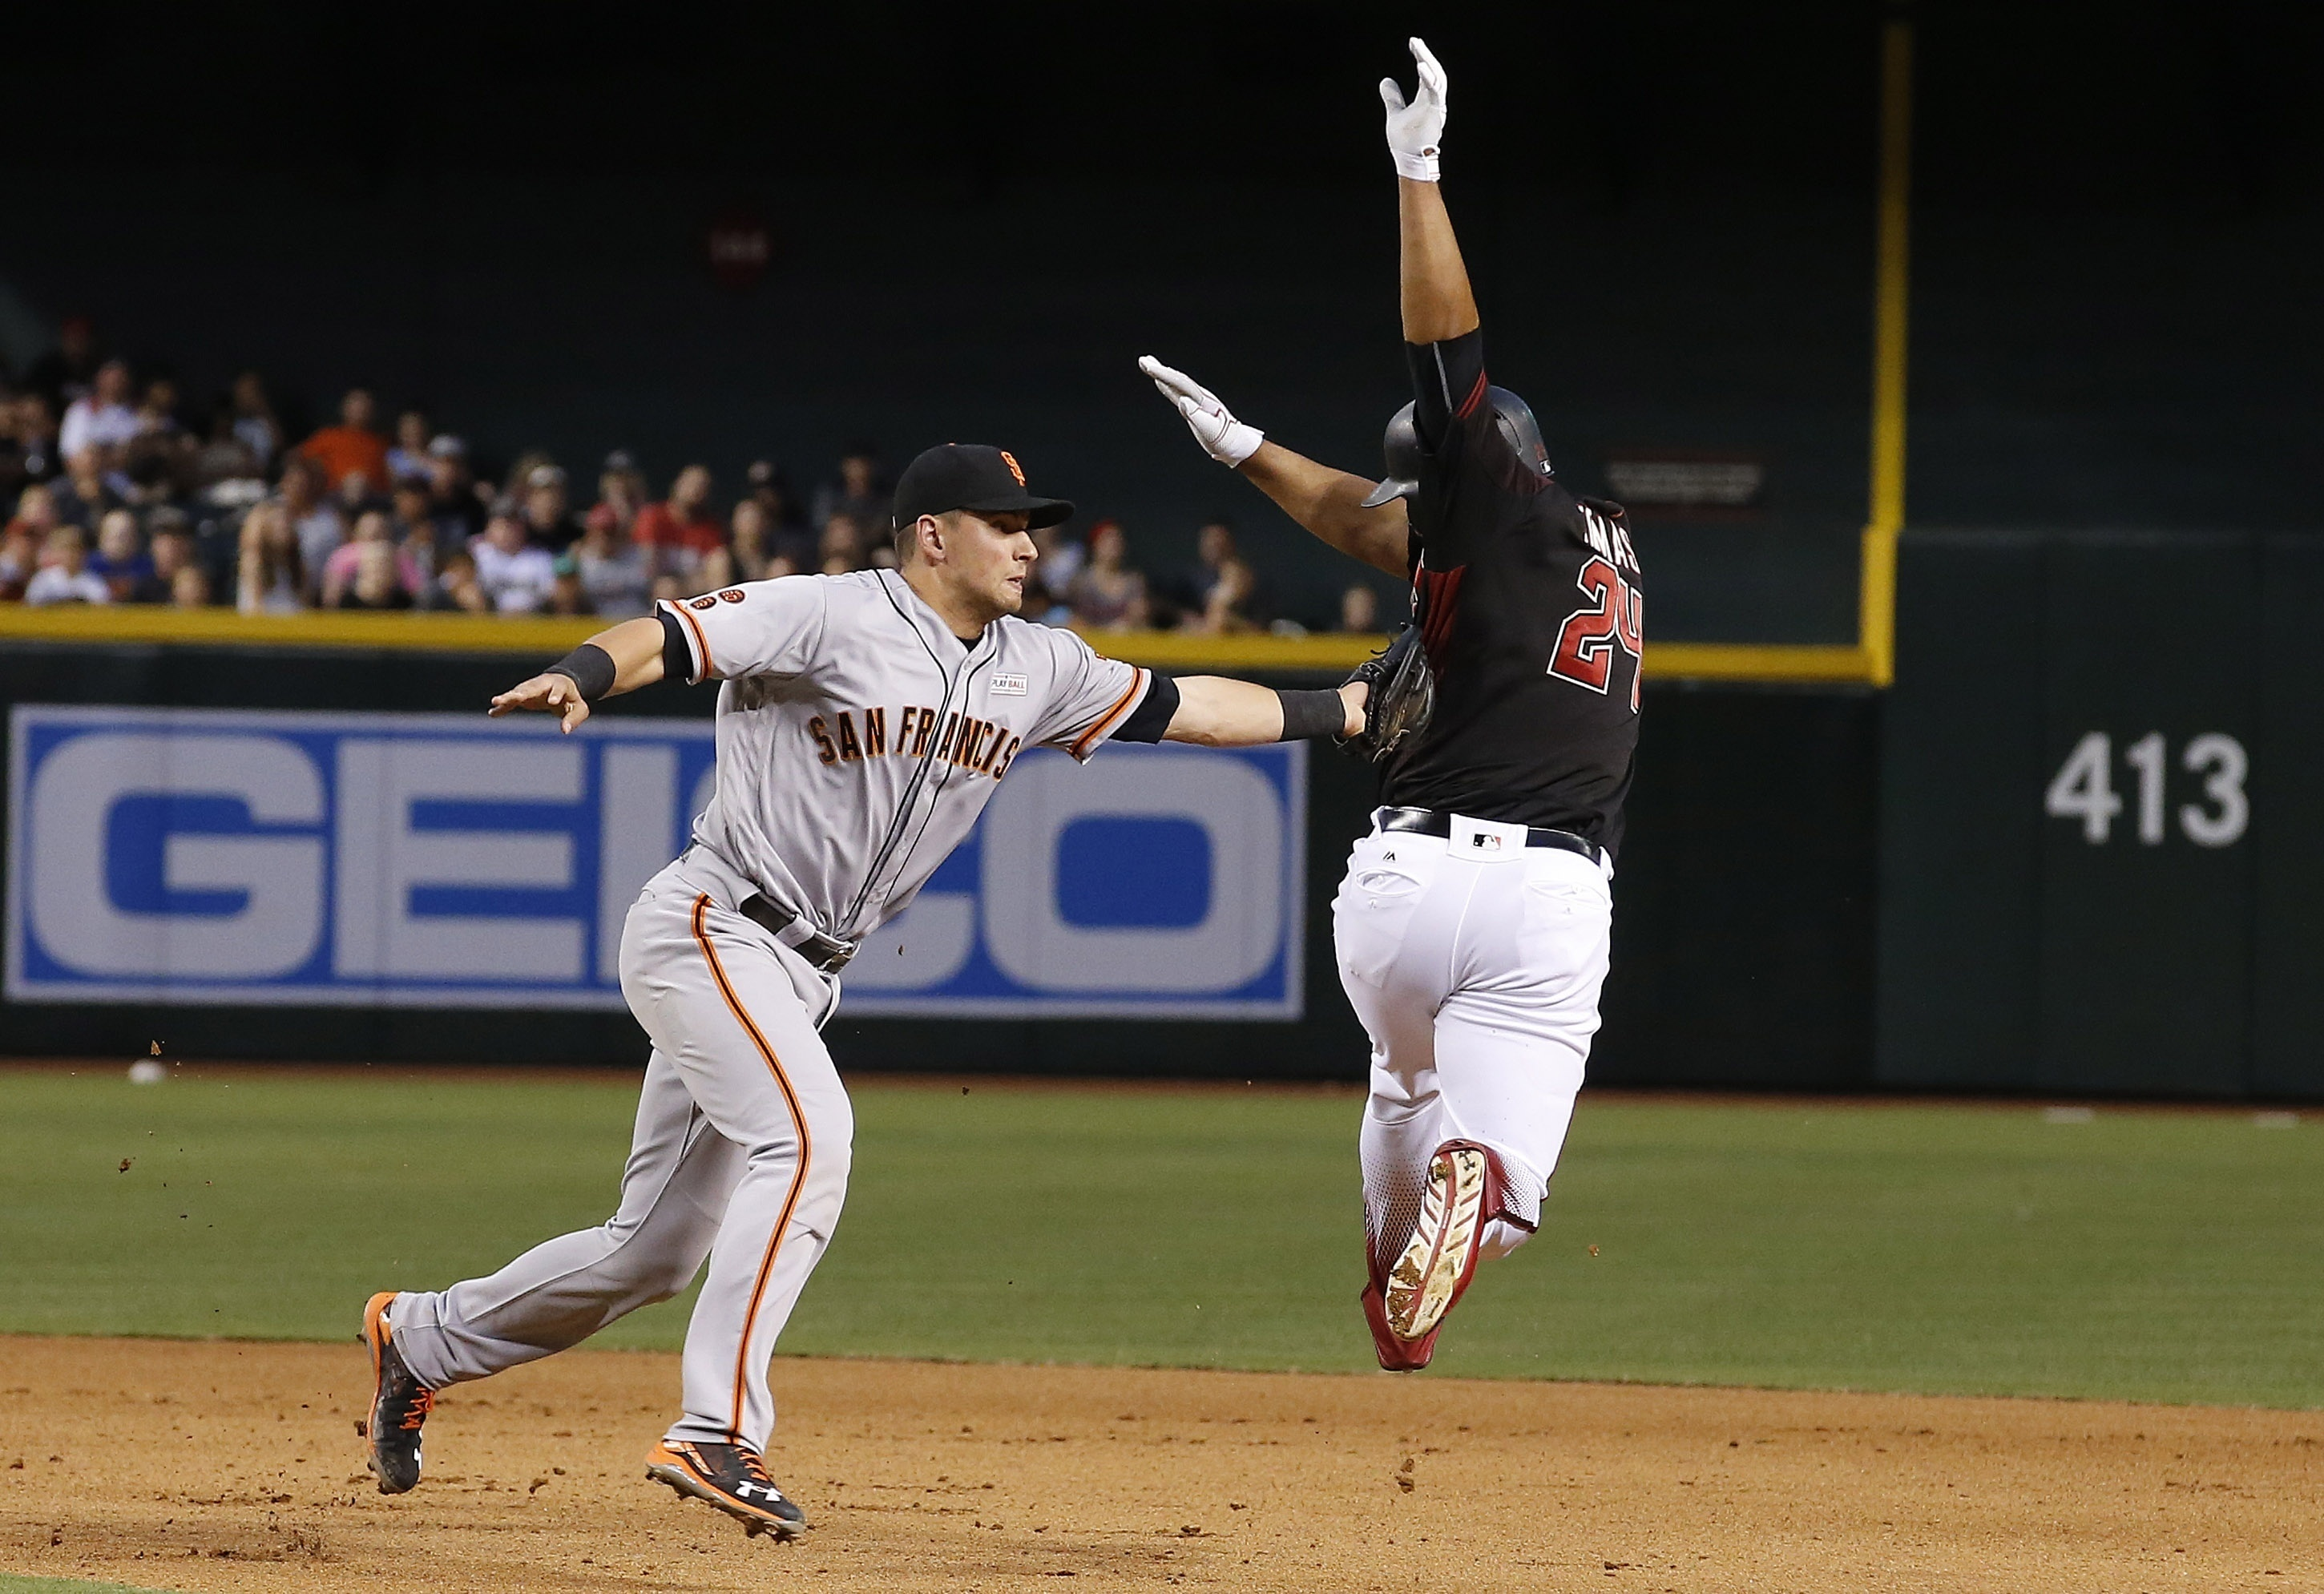 San Francisco Giants' Joe Panik, left, tags out Arizona Diamondbacks' Yasmany Tomas, right, as Tomas tries to get to second base during the seventh inning of a baseball game Saturday, May 14, 2016, in Phoenix. (AP Photo/Ross D. Franklin)